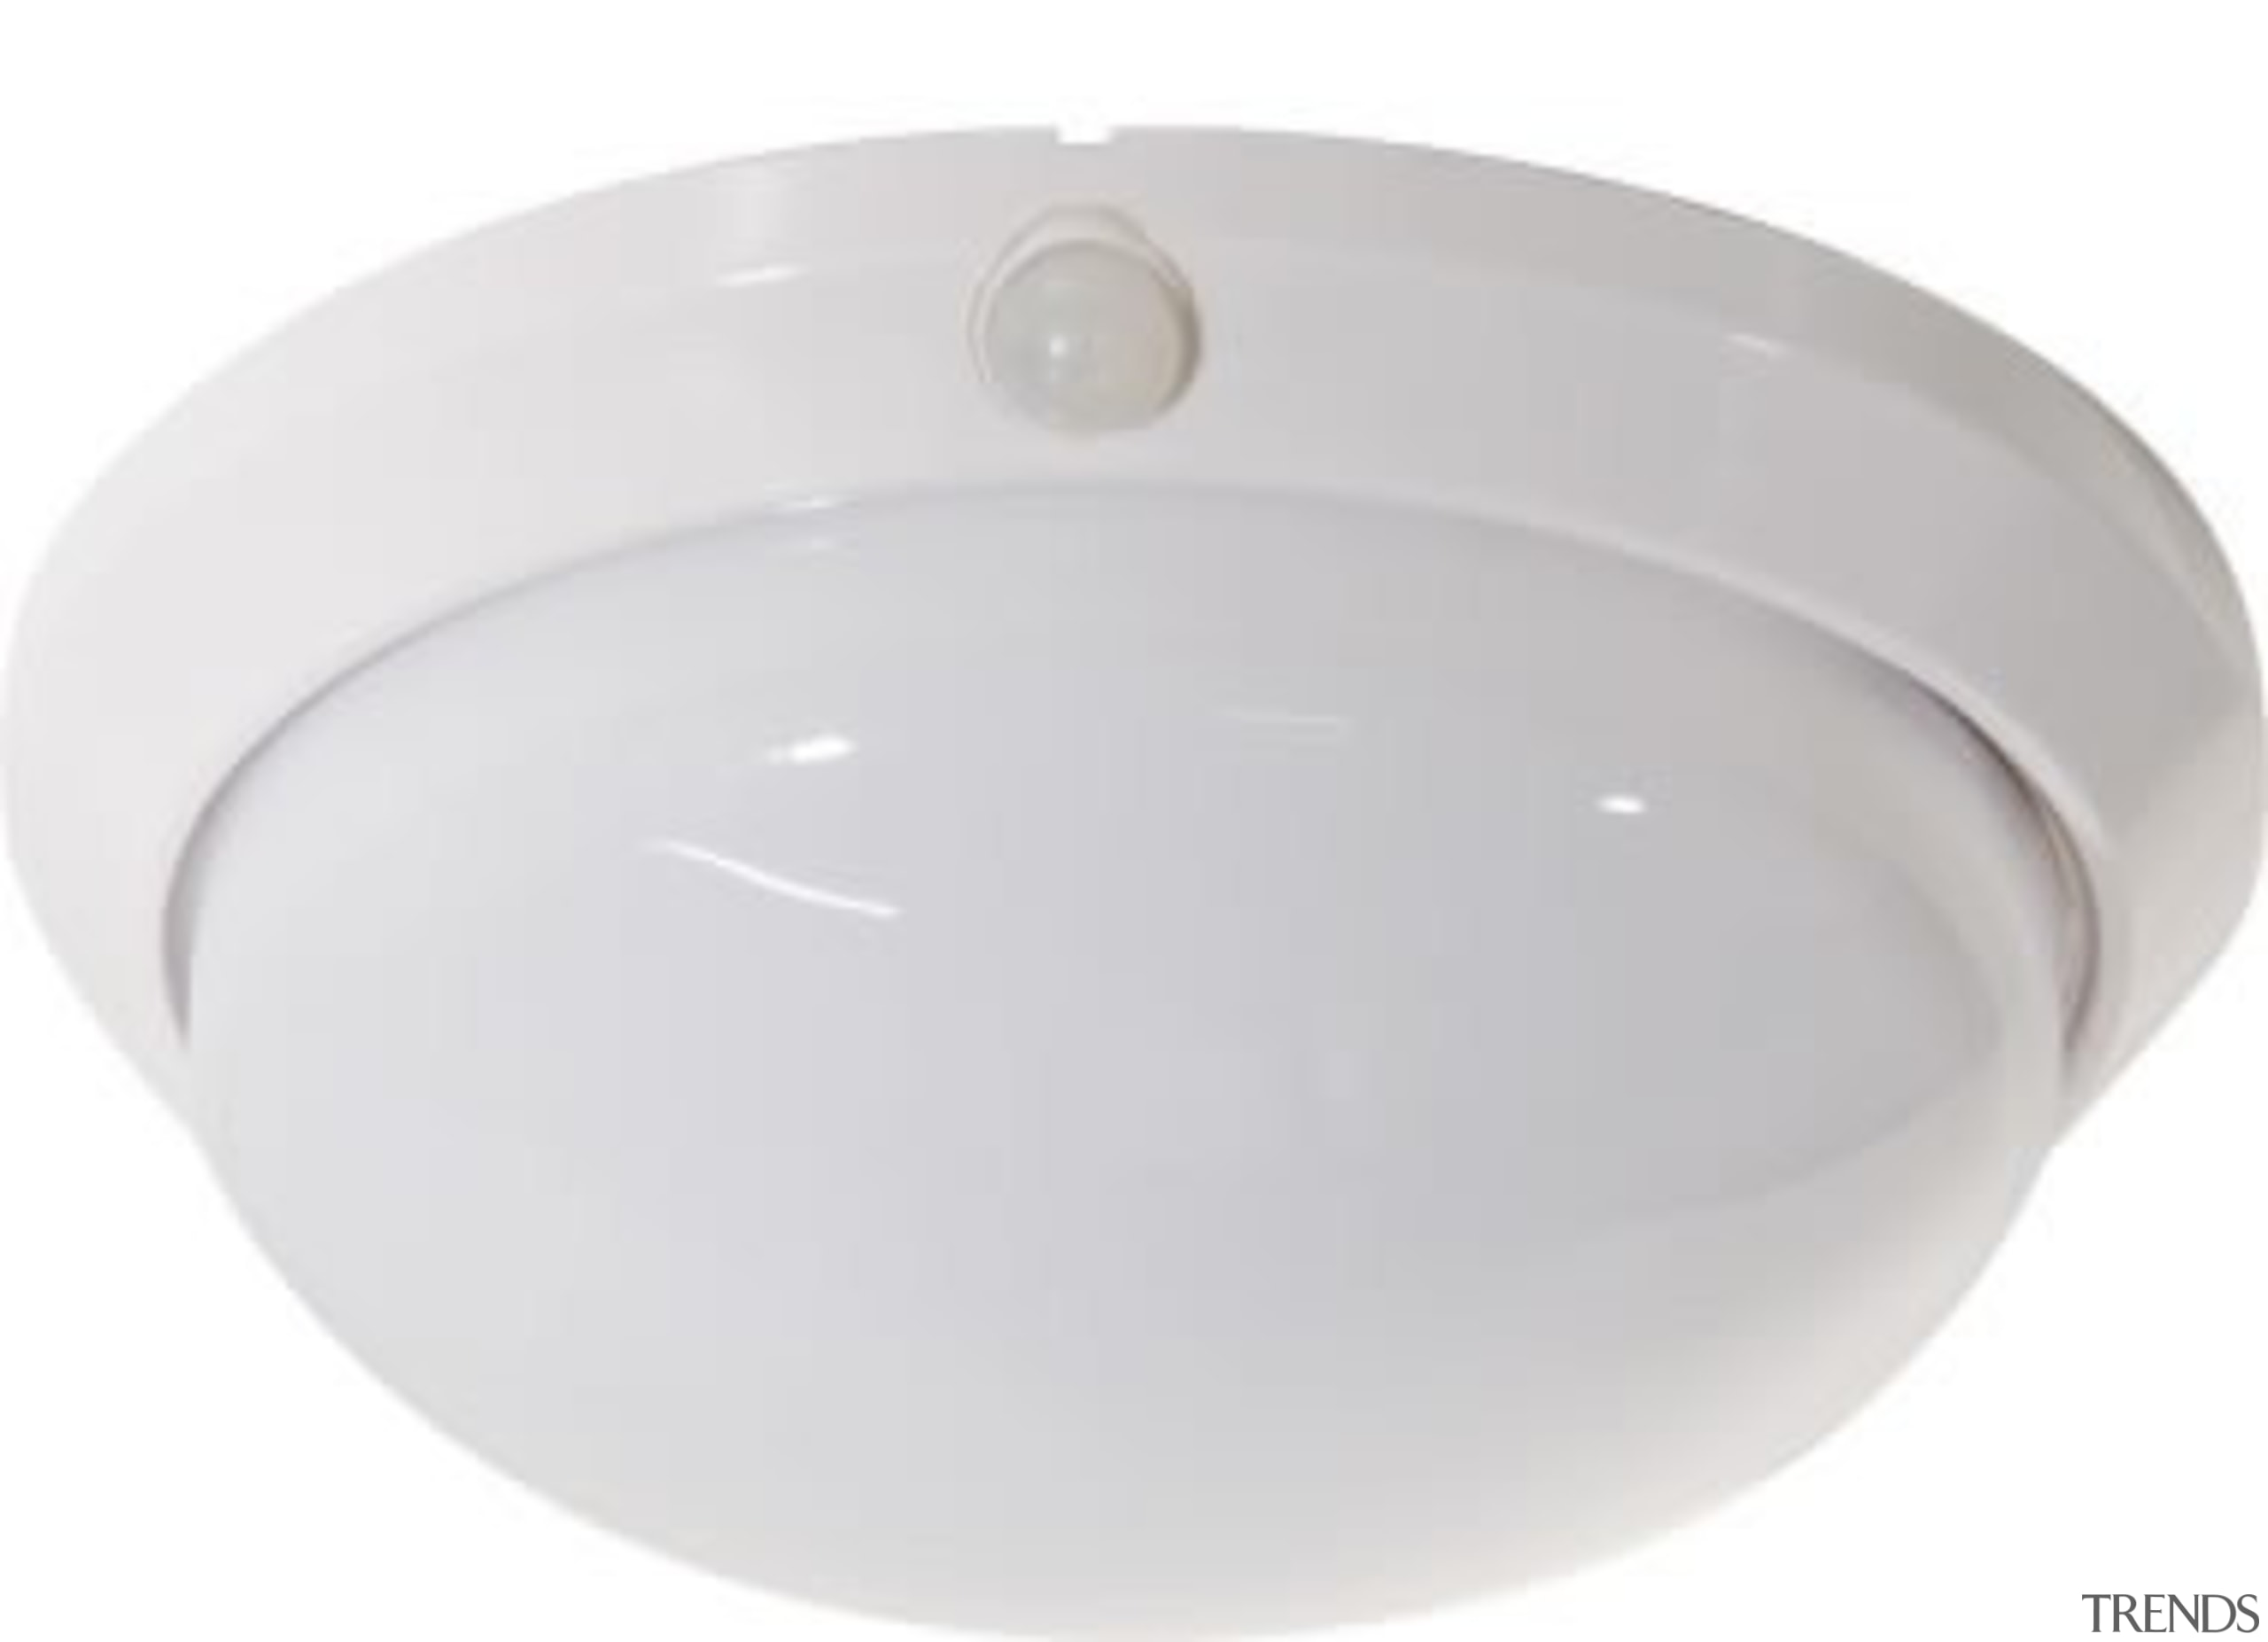 FeaturesA classic oyster style ceiling mount construction with lighting, product design, smoke detector, white